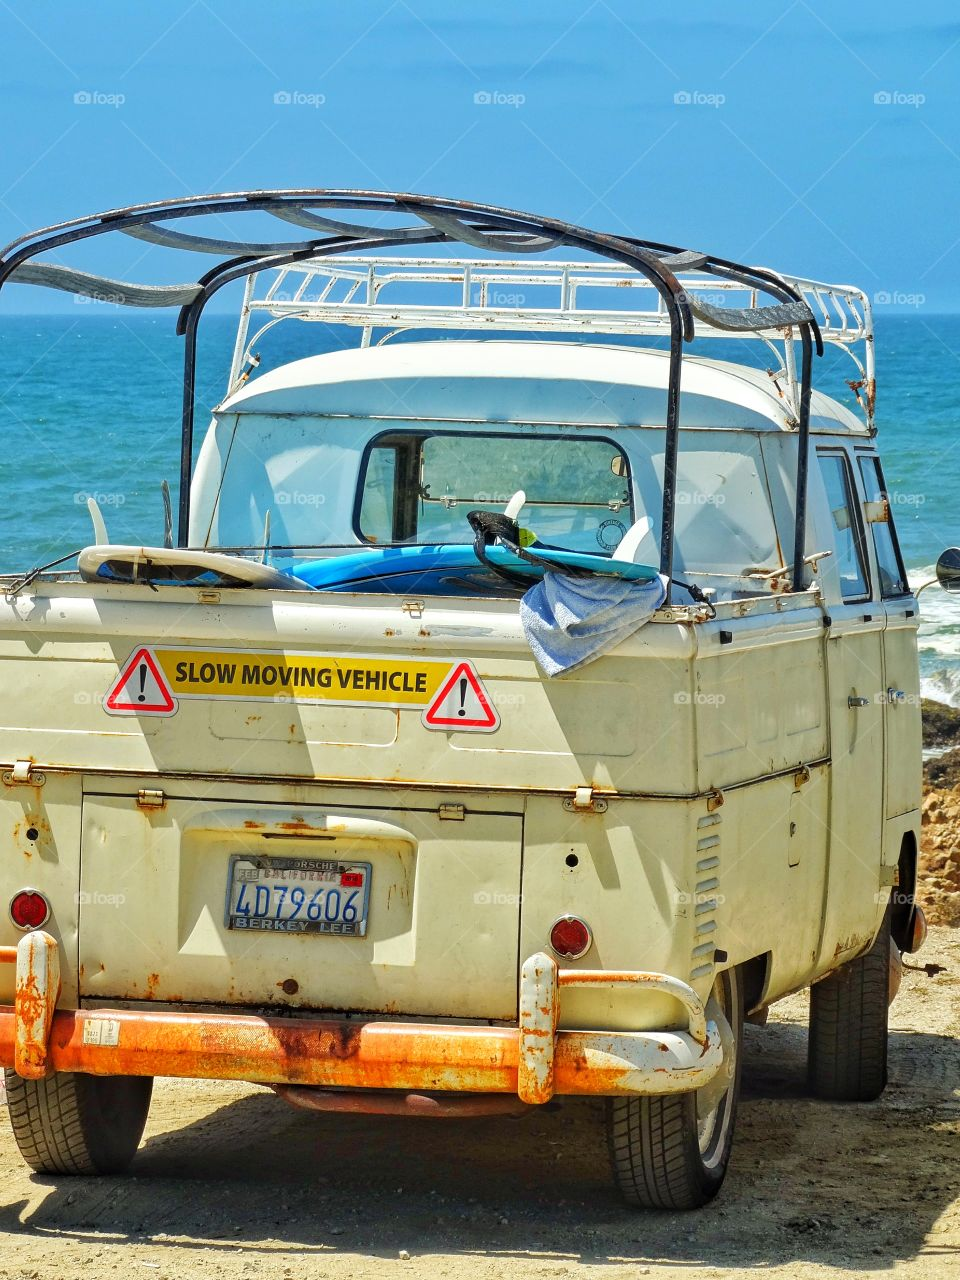 California Surfer Bus. Vintage VW Bus Loaded With Surfboards On The California Coast